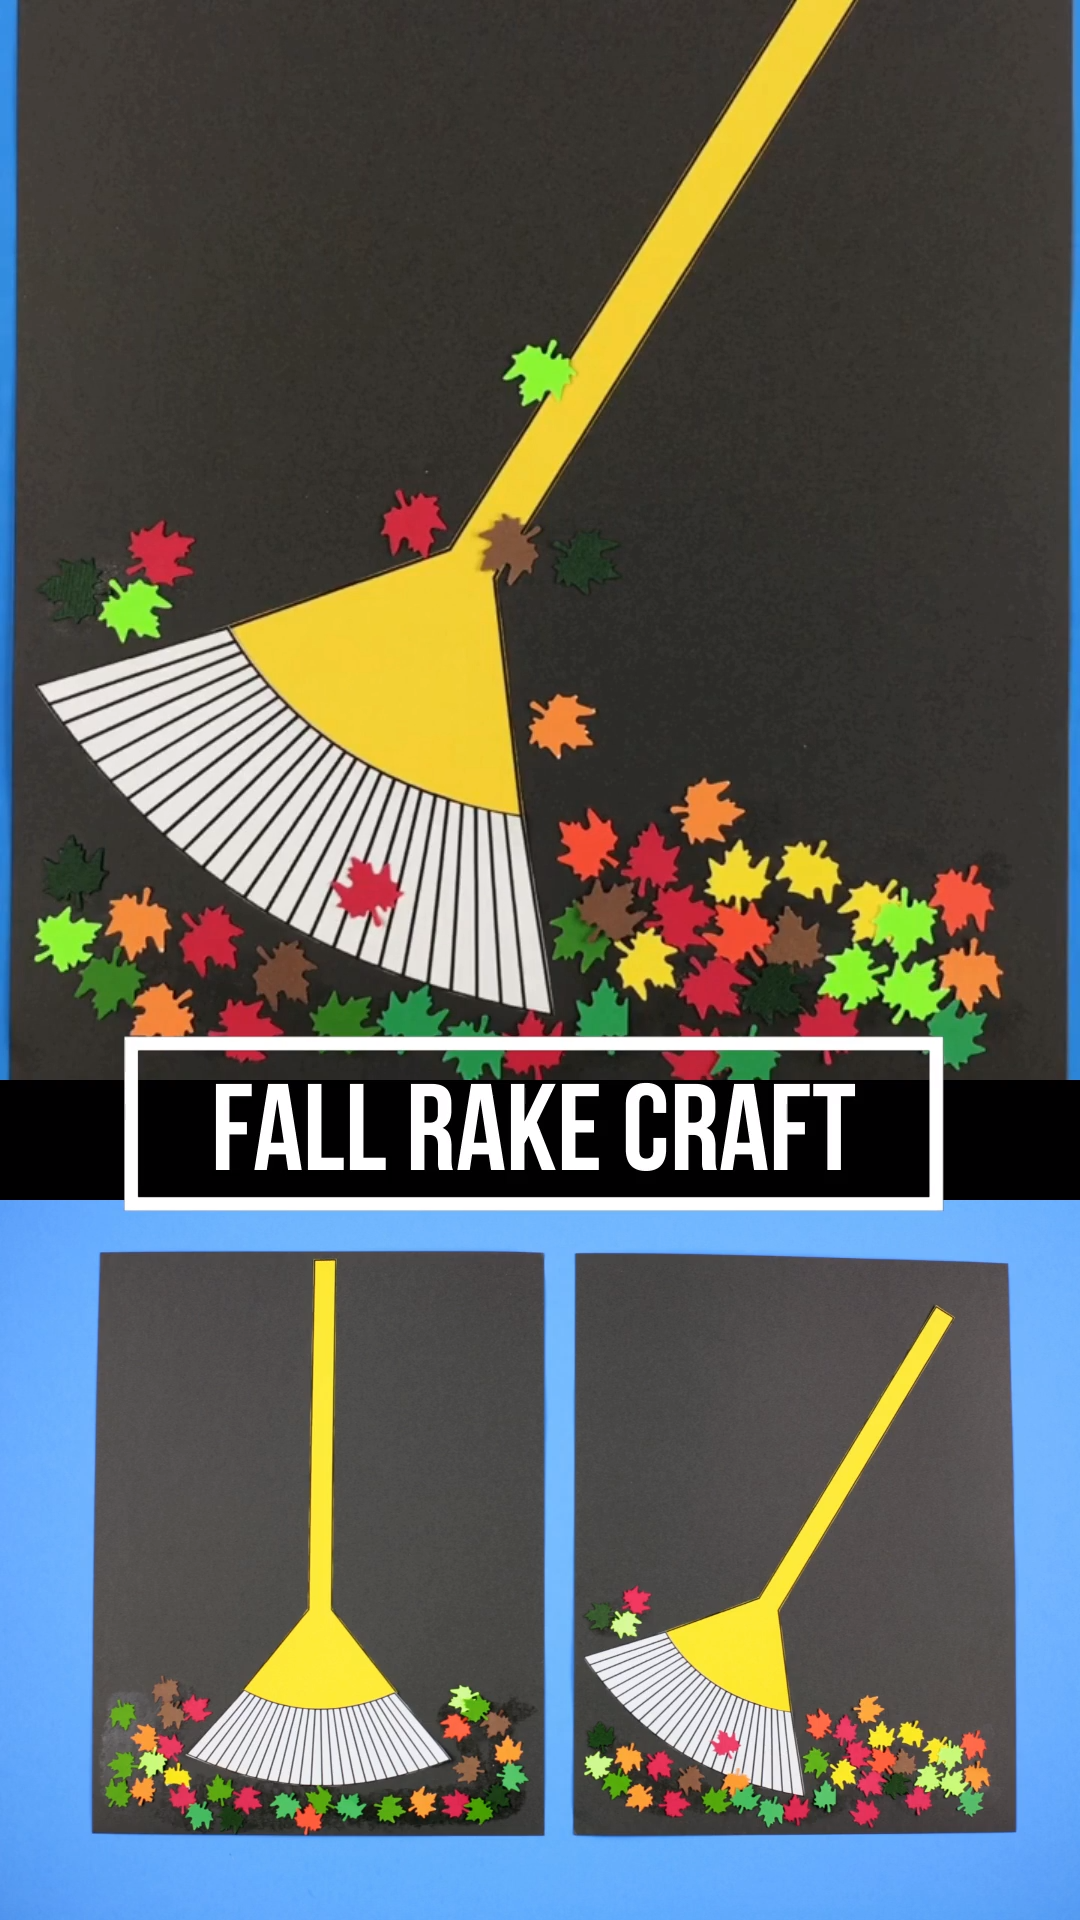 Fall Rake Craft For Kids  Rake And Leaf Craft With Printable - Preschool crafts fall, Fall crafts for kids, Crafts for kids, Leaf crafts, Craft projects for kids, Fall crafts - Use the free template and real, plastic or paper leaves to make with this easy fall rake craft for preschoolers and older kids